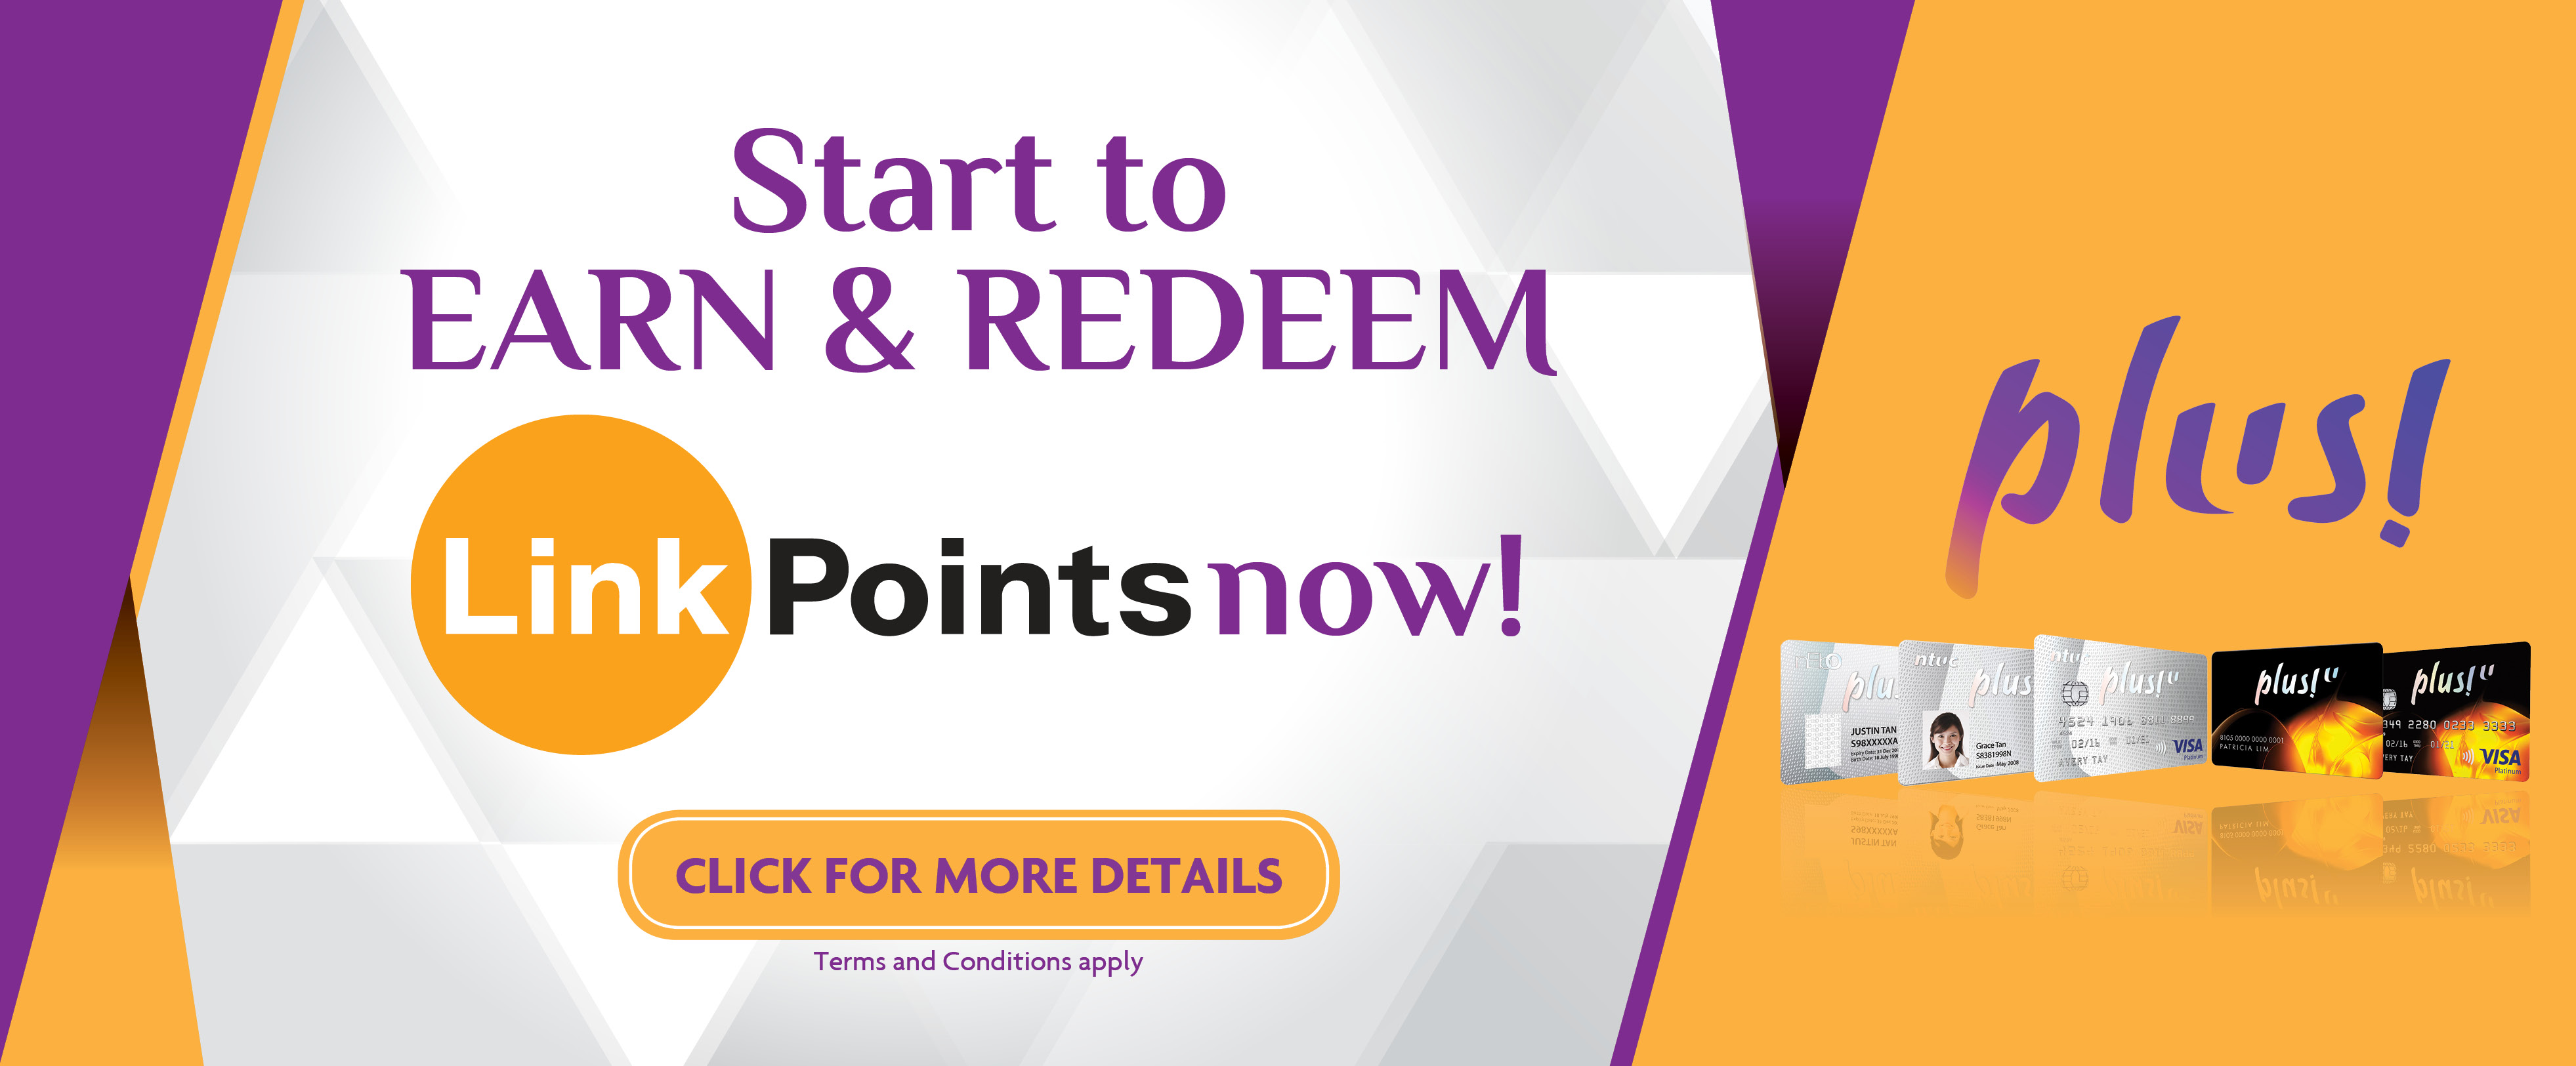 Select-SF1809012-NTUC-LinkPoint-Web-Banner-942x390px-v2-1